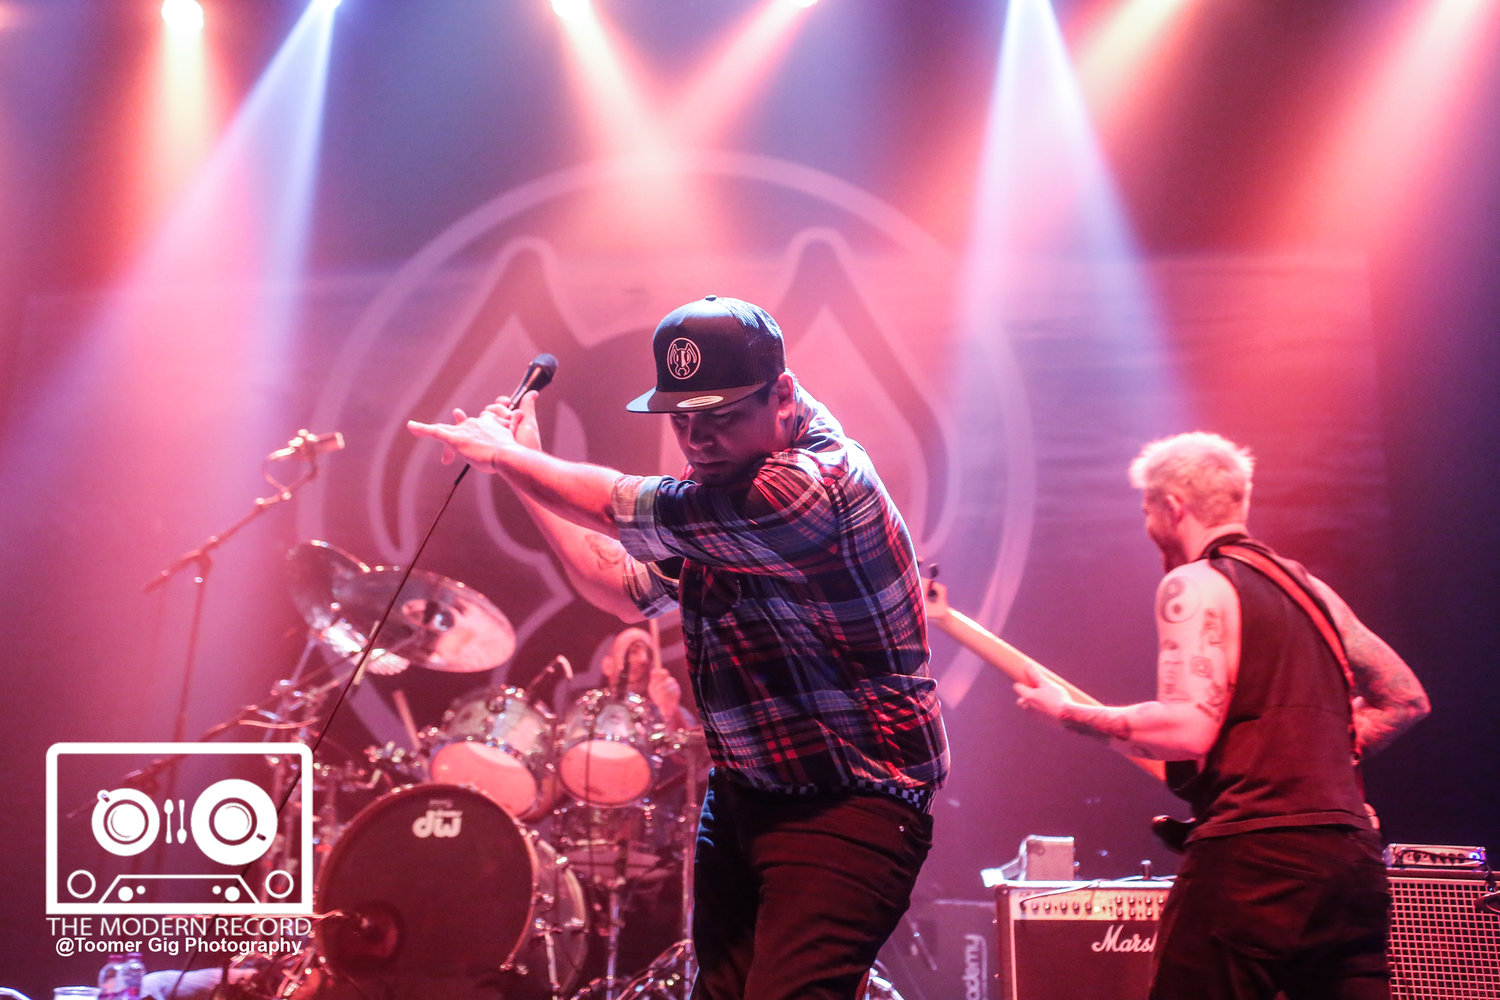 ALIEN ANT FARM PERFORMING AT O2 ACADEMY, LEEDS - 11.02.2018 PICTURE: LAURA TOOMER PHOTOGRAPHY